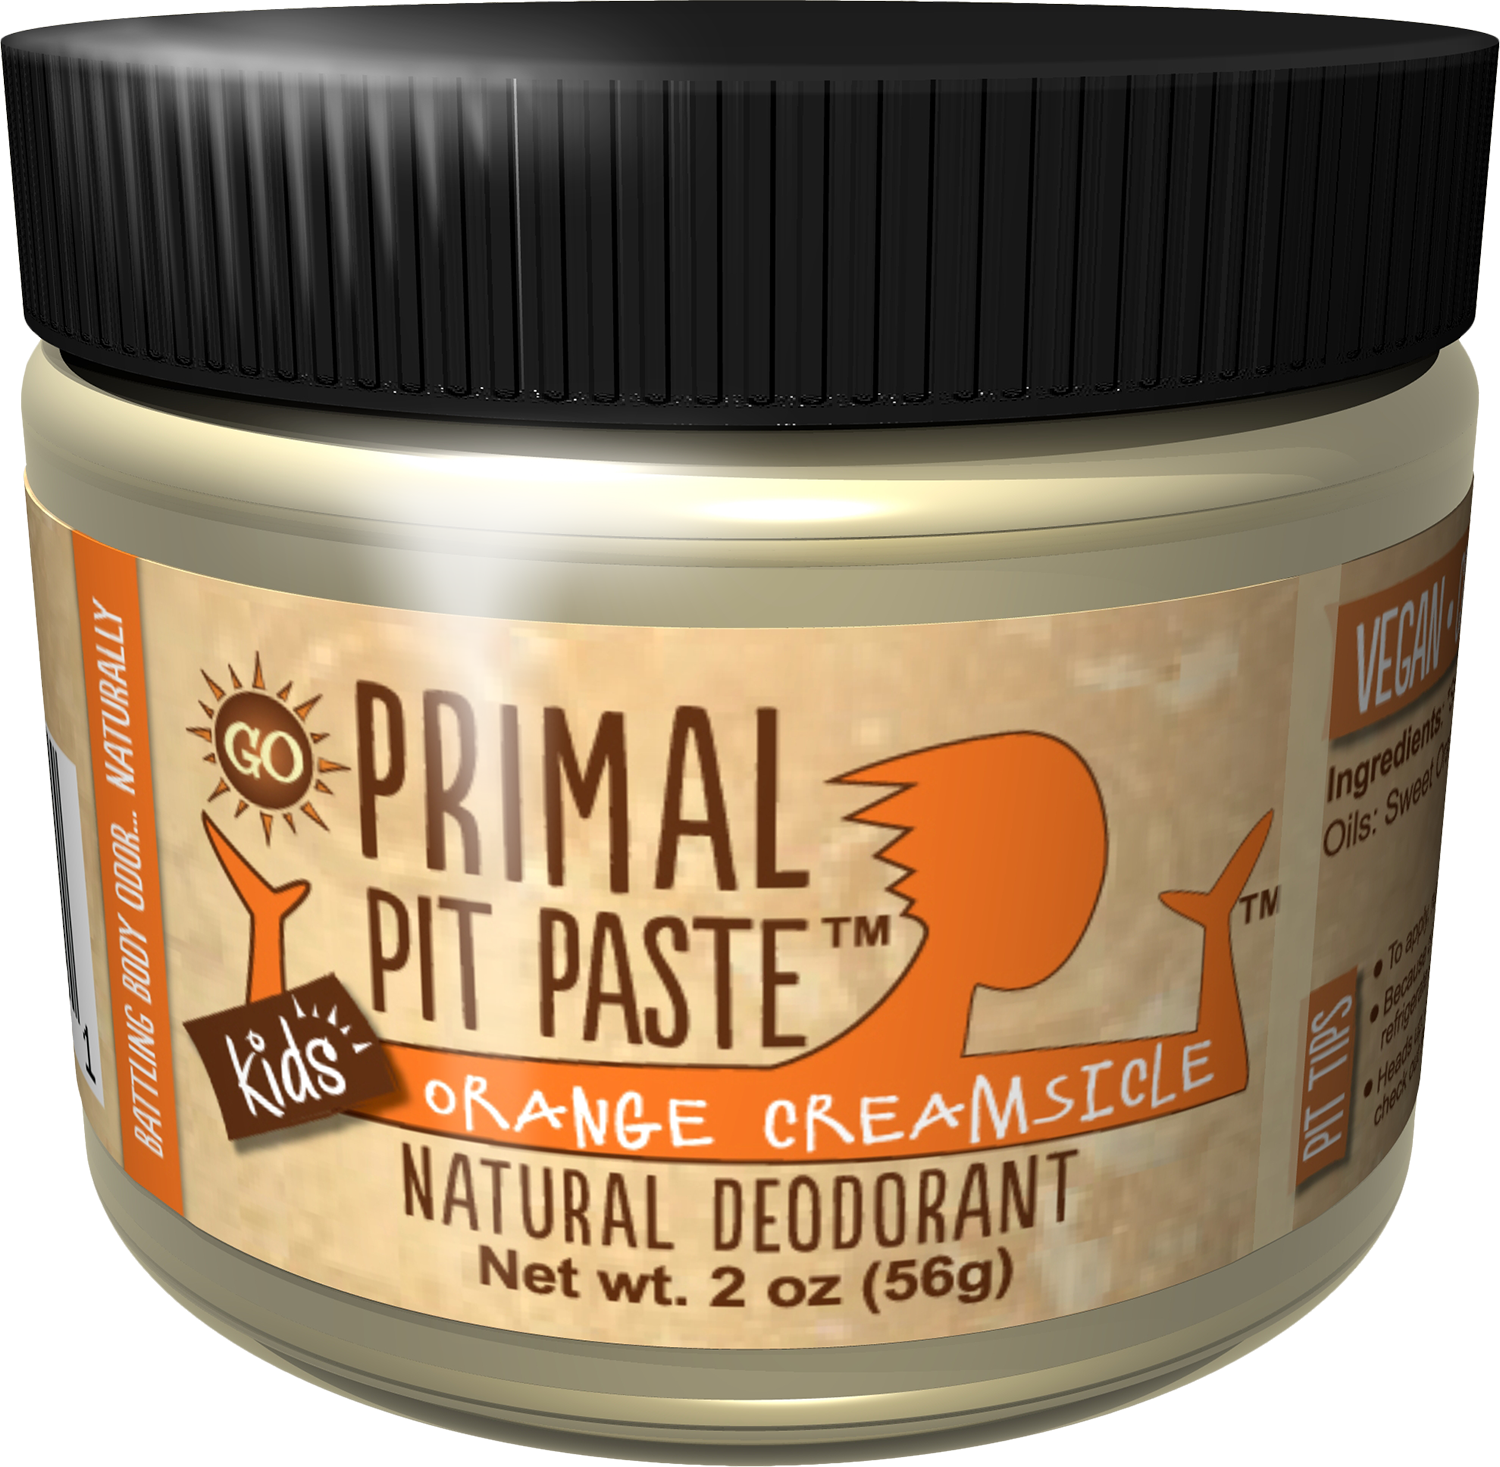 primal-pit-paste_3d_jar_big_orangecreamsicle